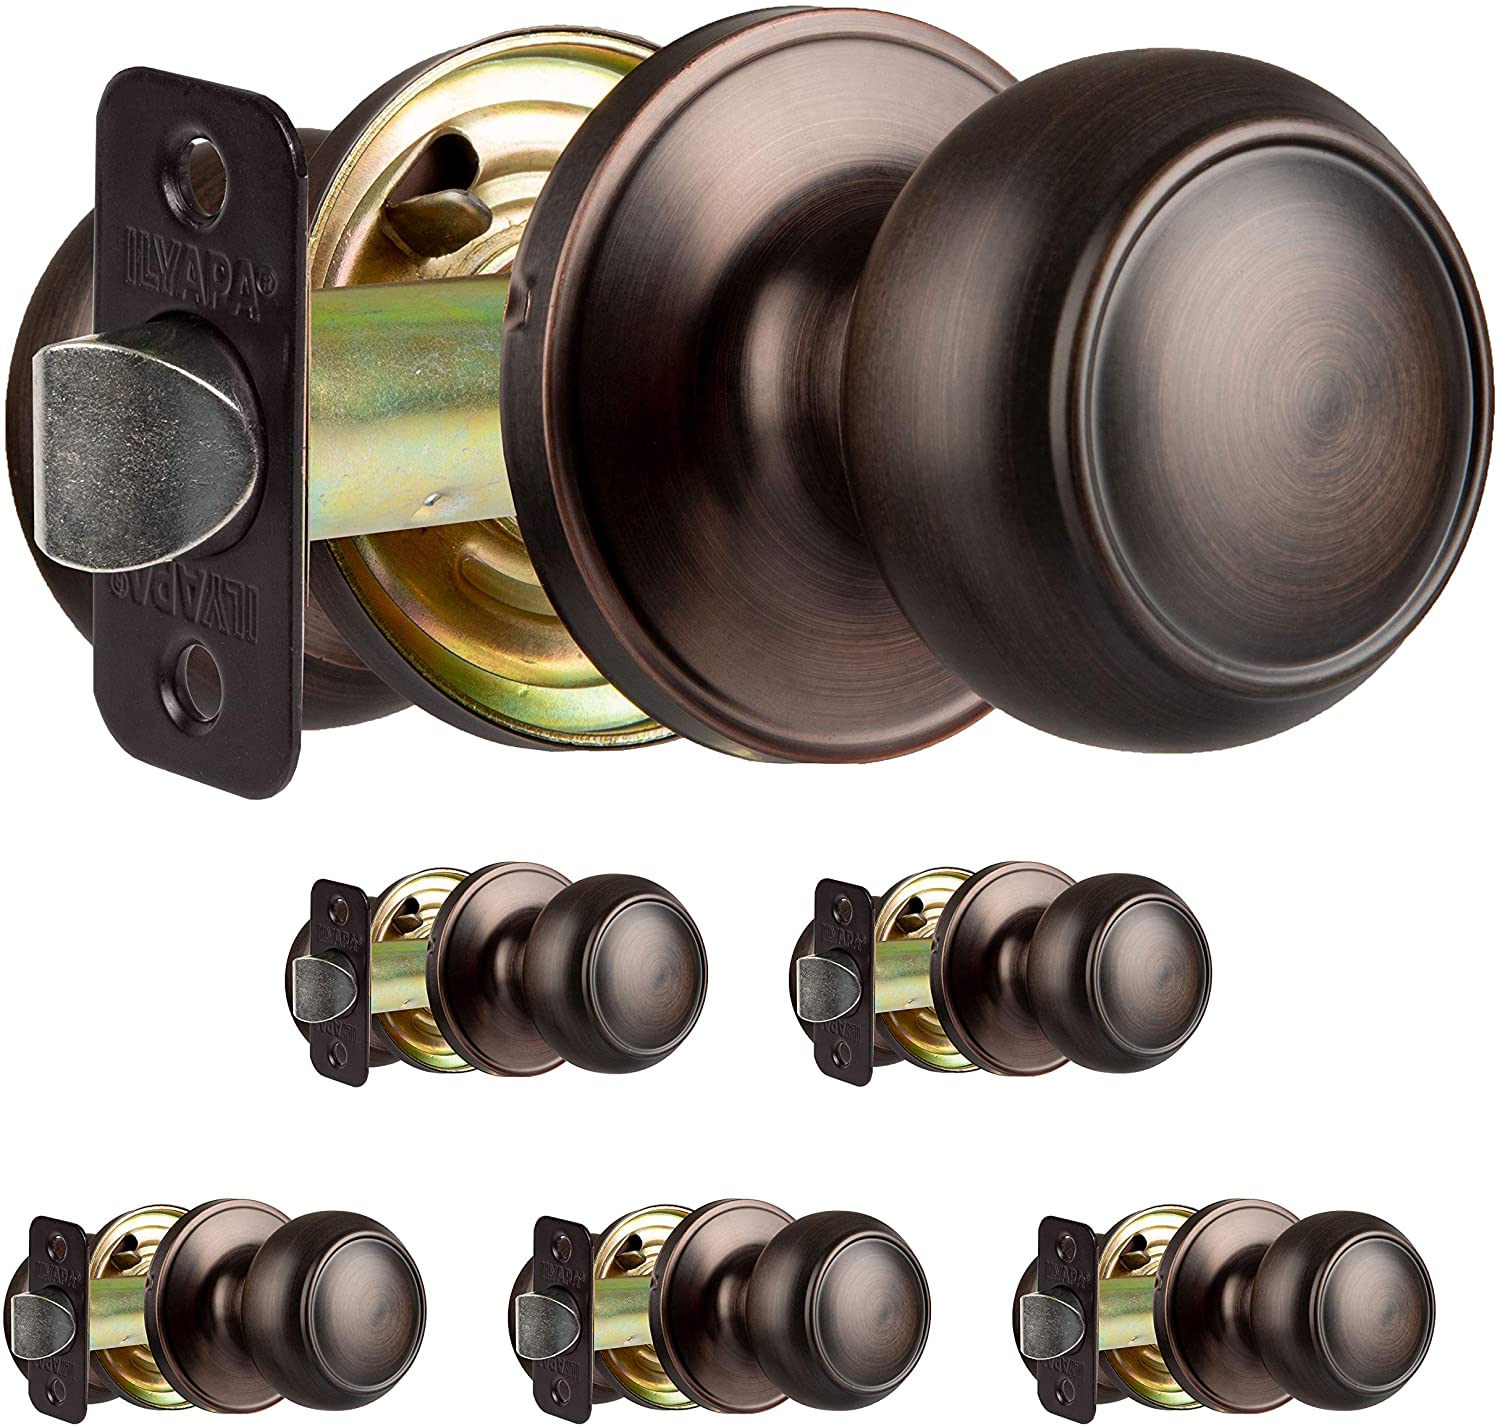 Interior Passage Door Knob - Keyless Hall and Closet Locksets - Hall and Closet - Improved Oil Rubbed Bronze Finish - (6 Pack)